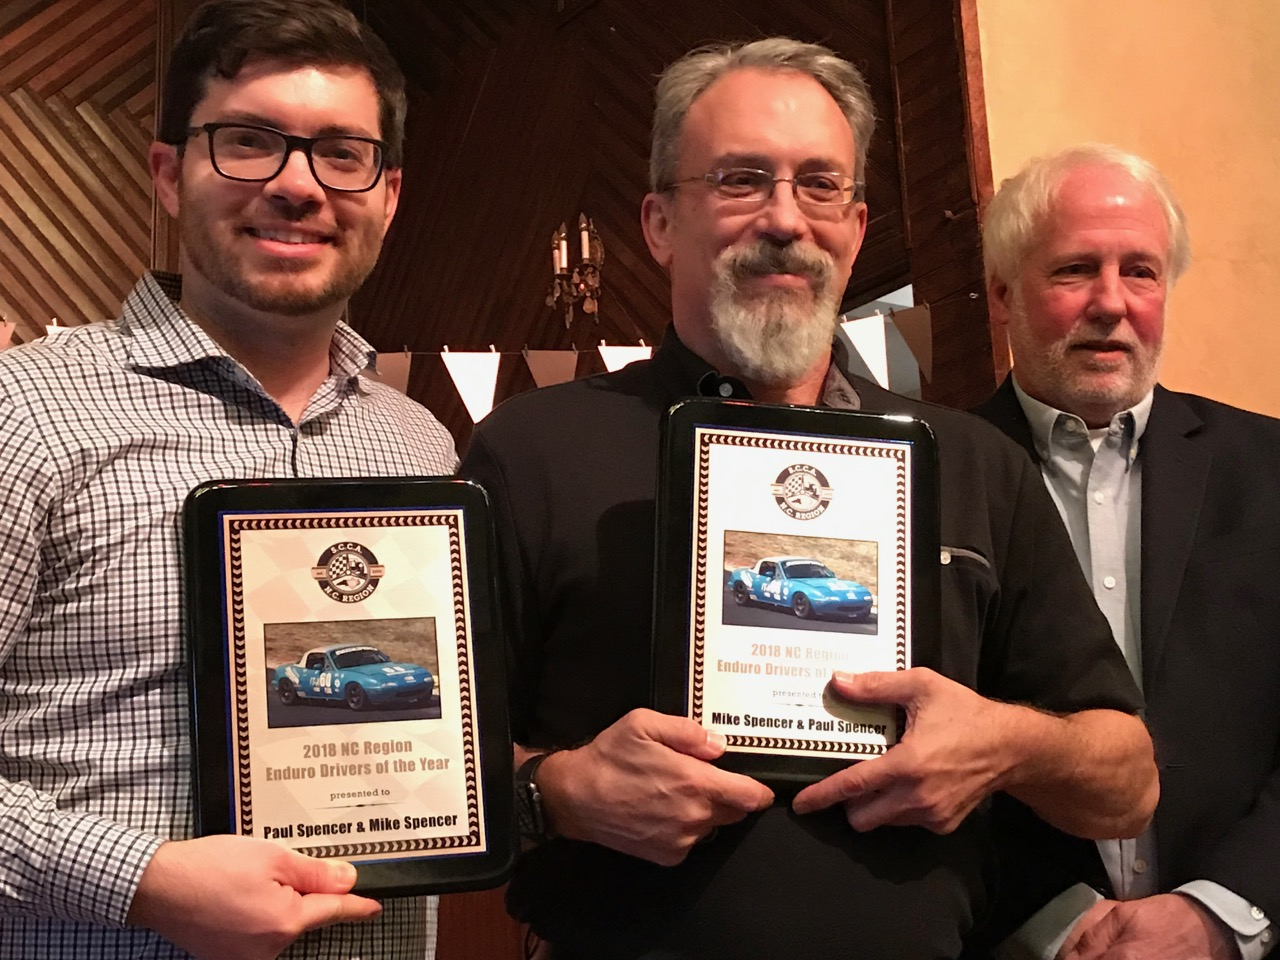 Paul & Mike Spencer - Enduro Drivers of the Year w/Sam